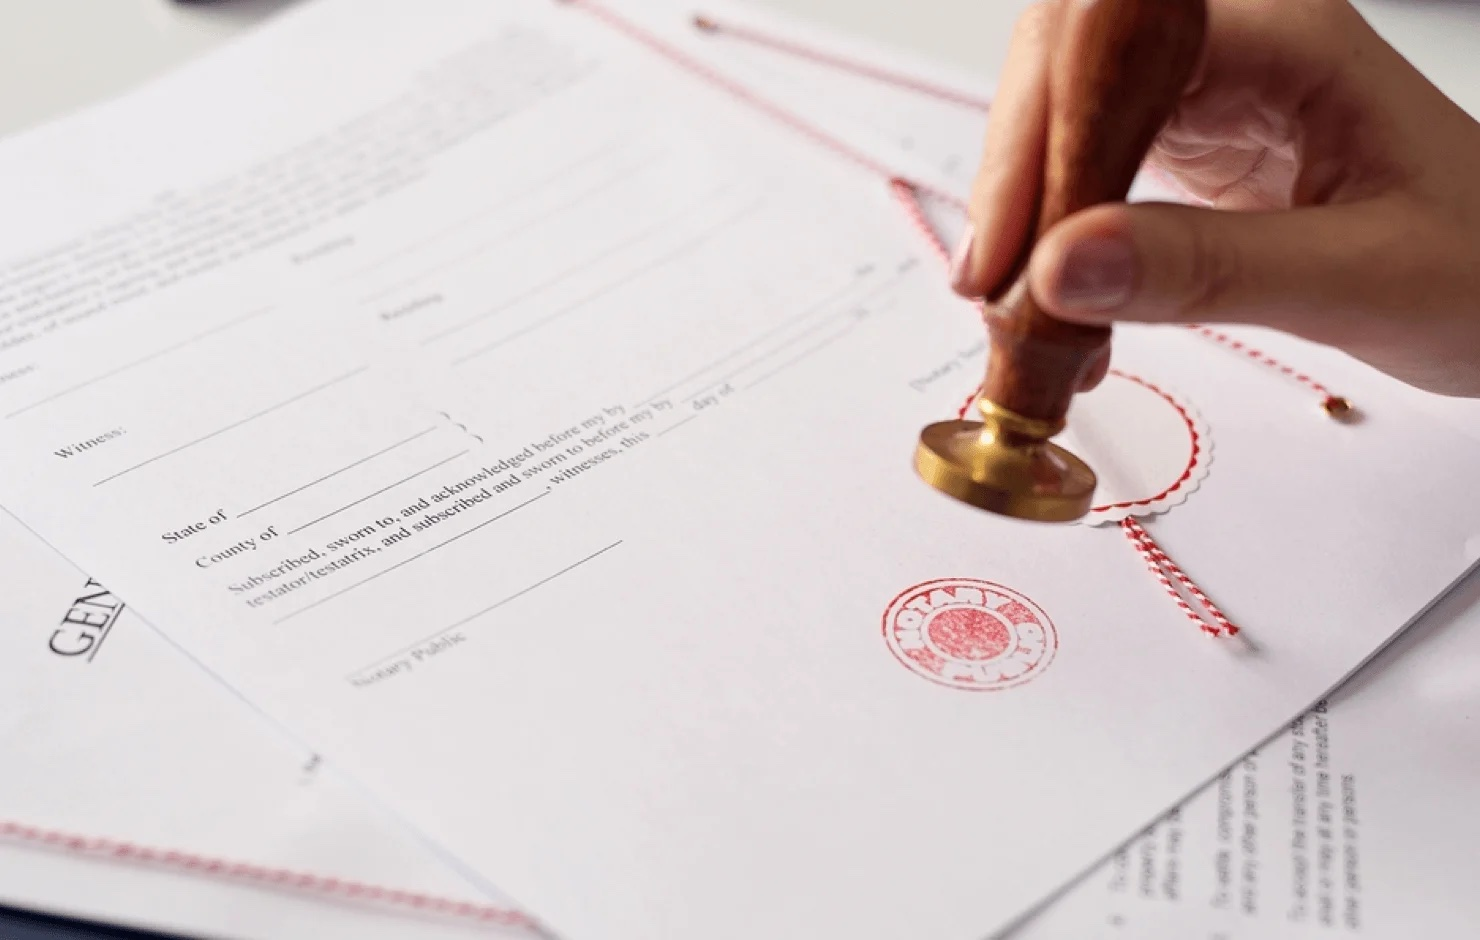 Colorado Sewer And Septic Tank Bonds